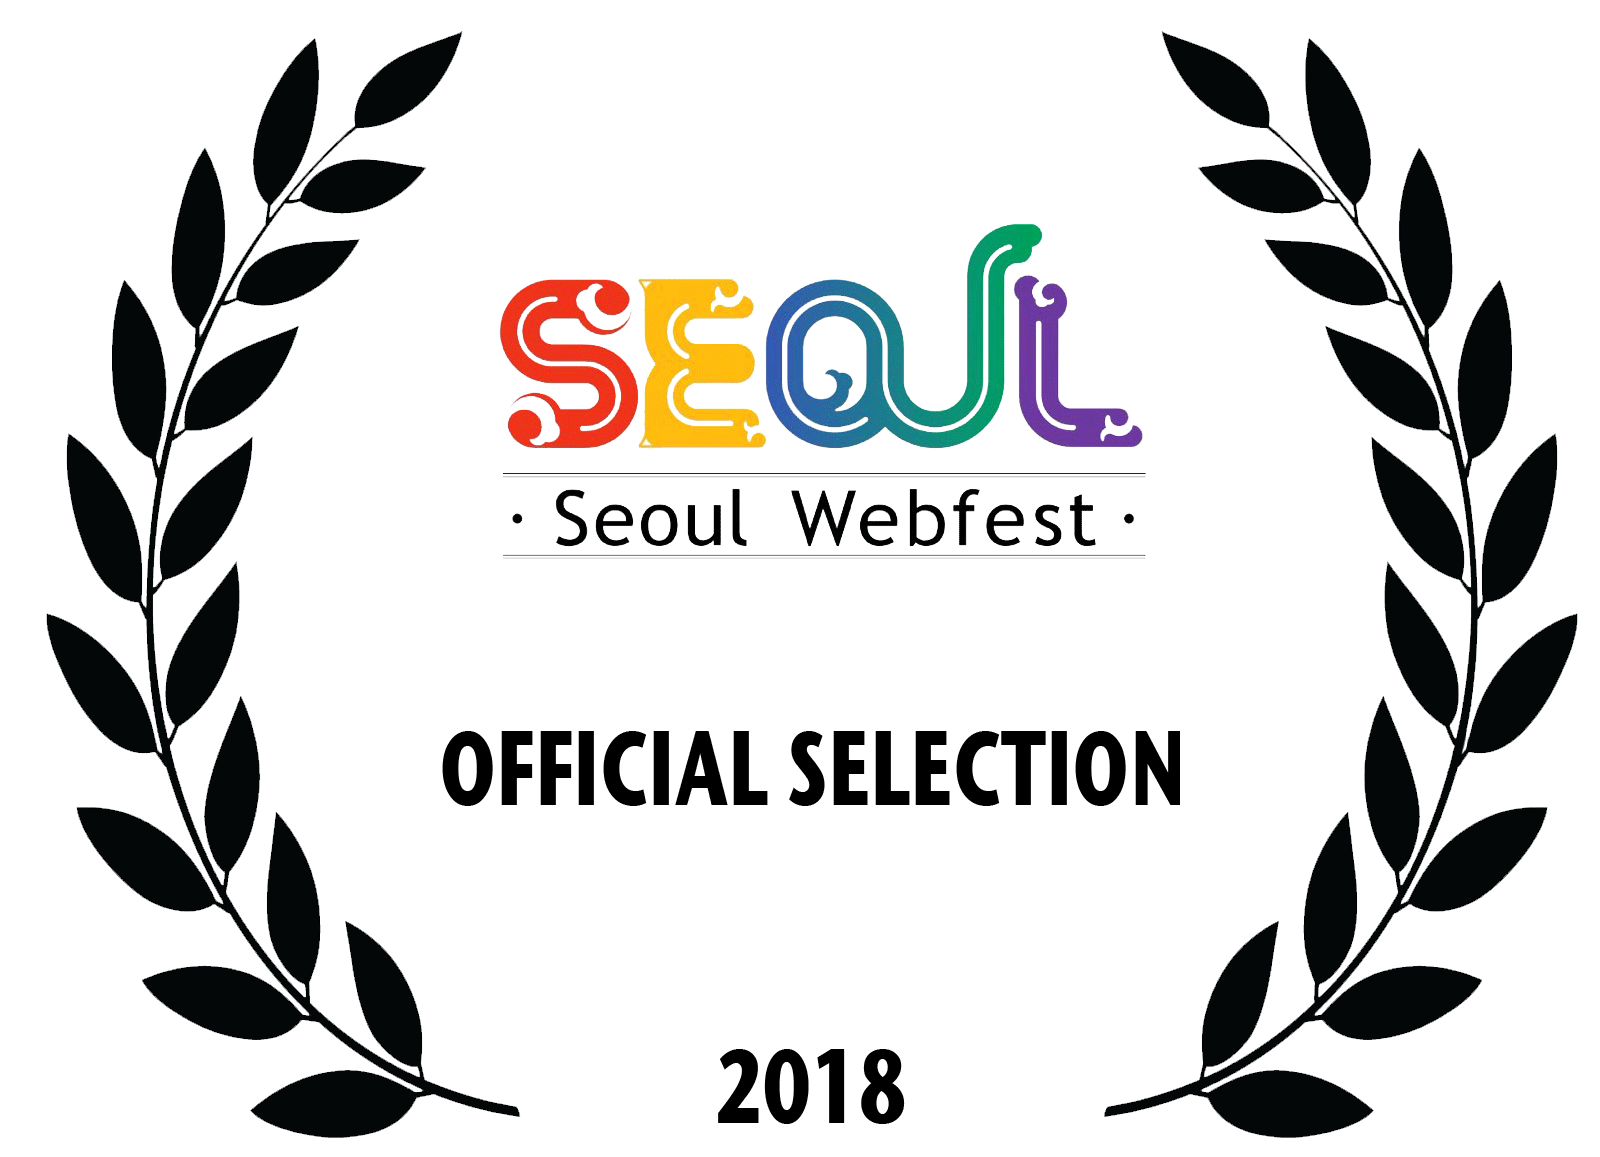 SeoulWebfest_OfficialSelection_2018.png